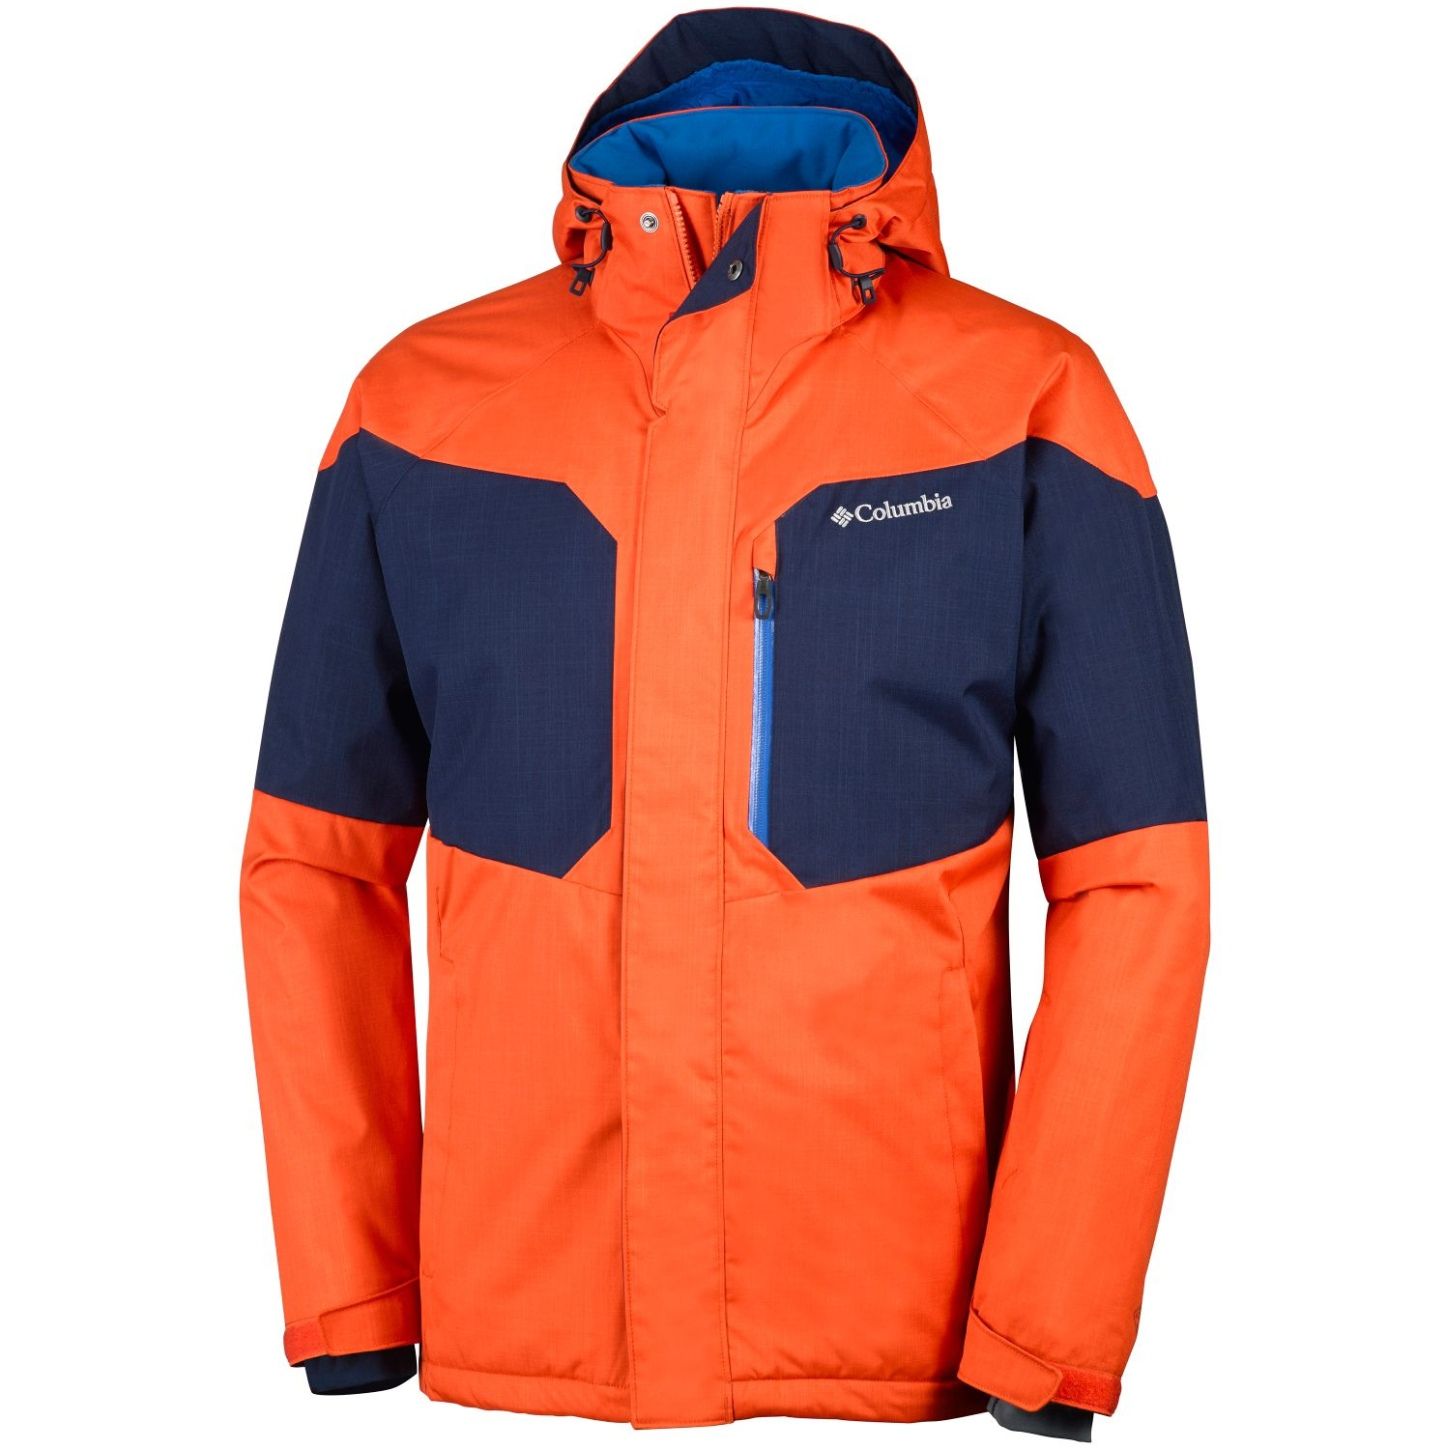 Columbia Men's Alpine Action Ski Jacket Tangy Orange, Collegiate Navy-30